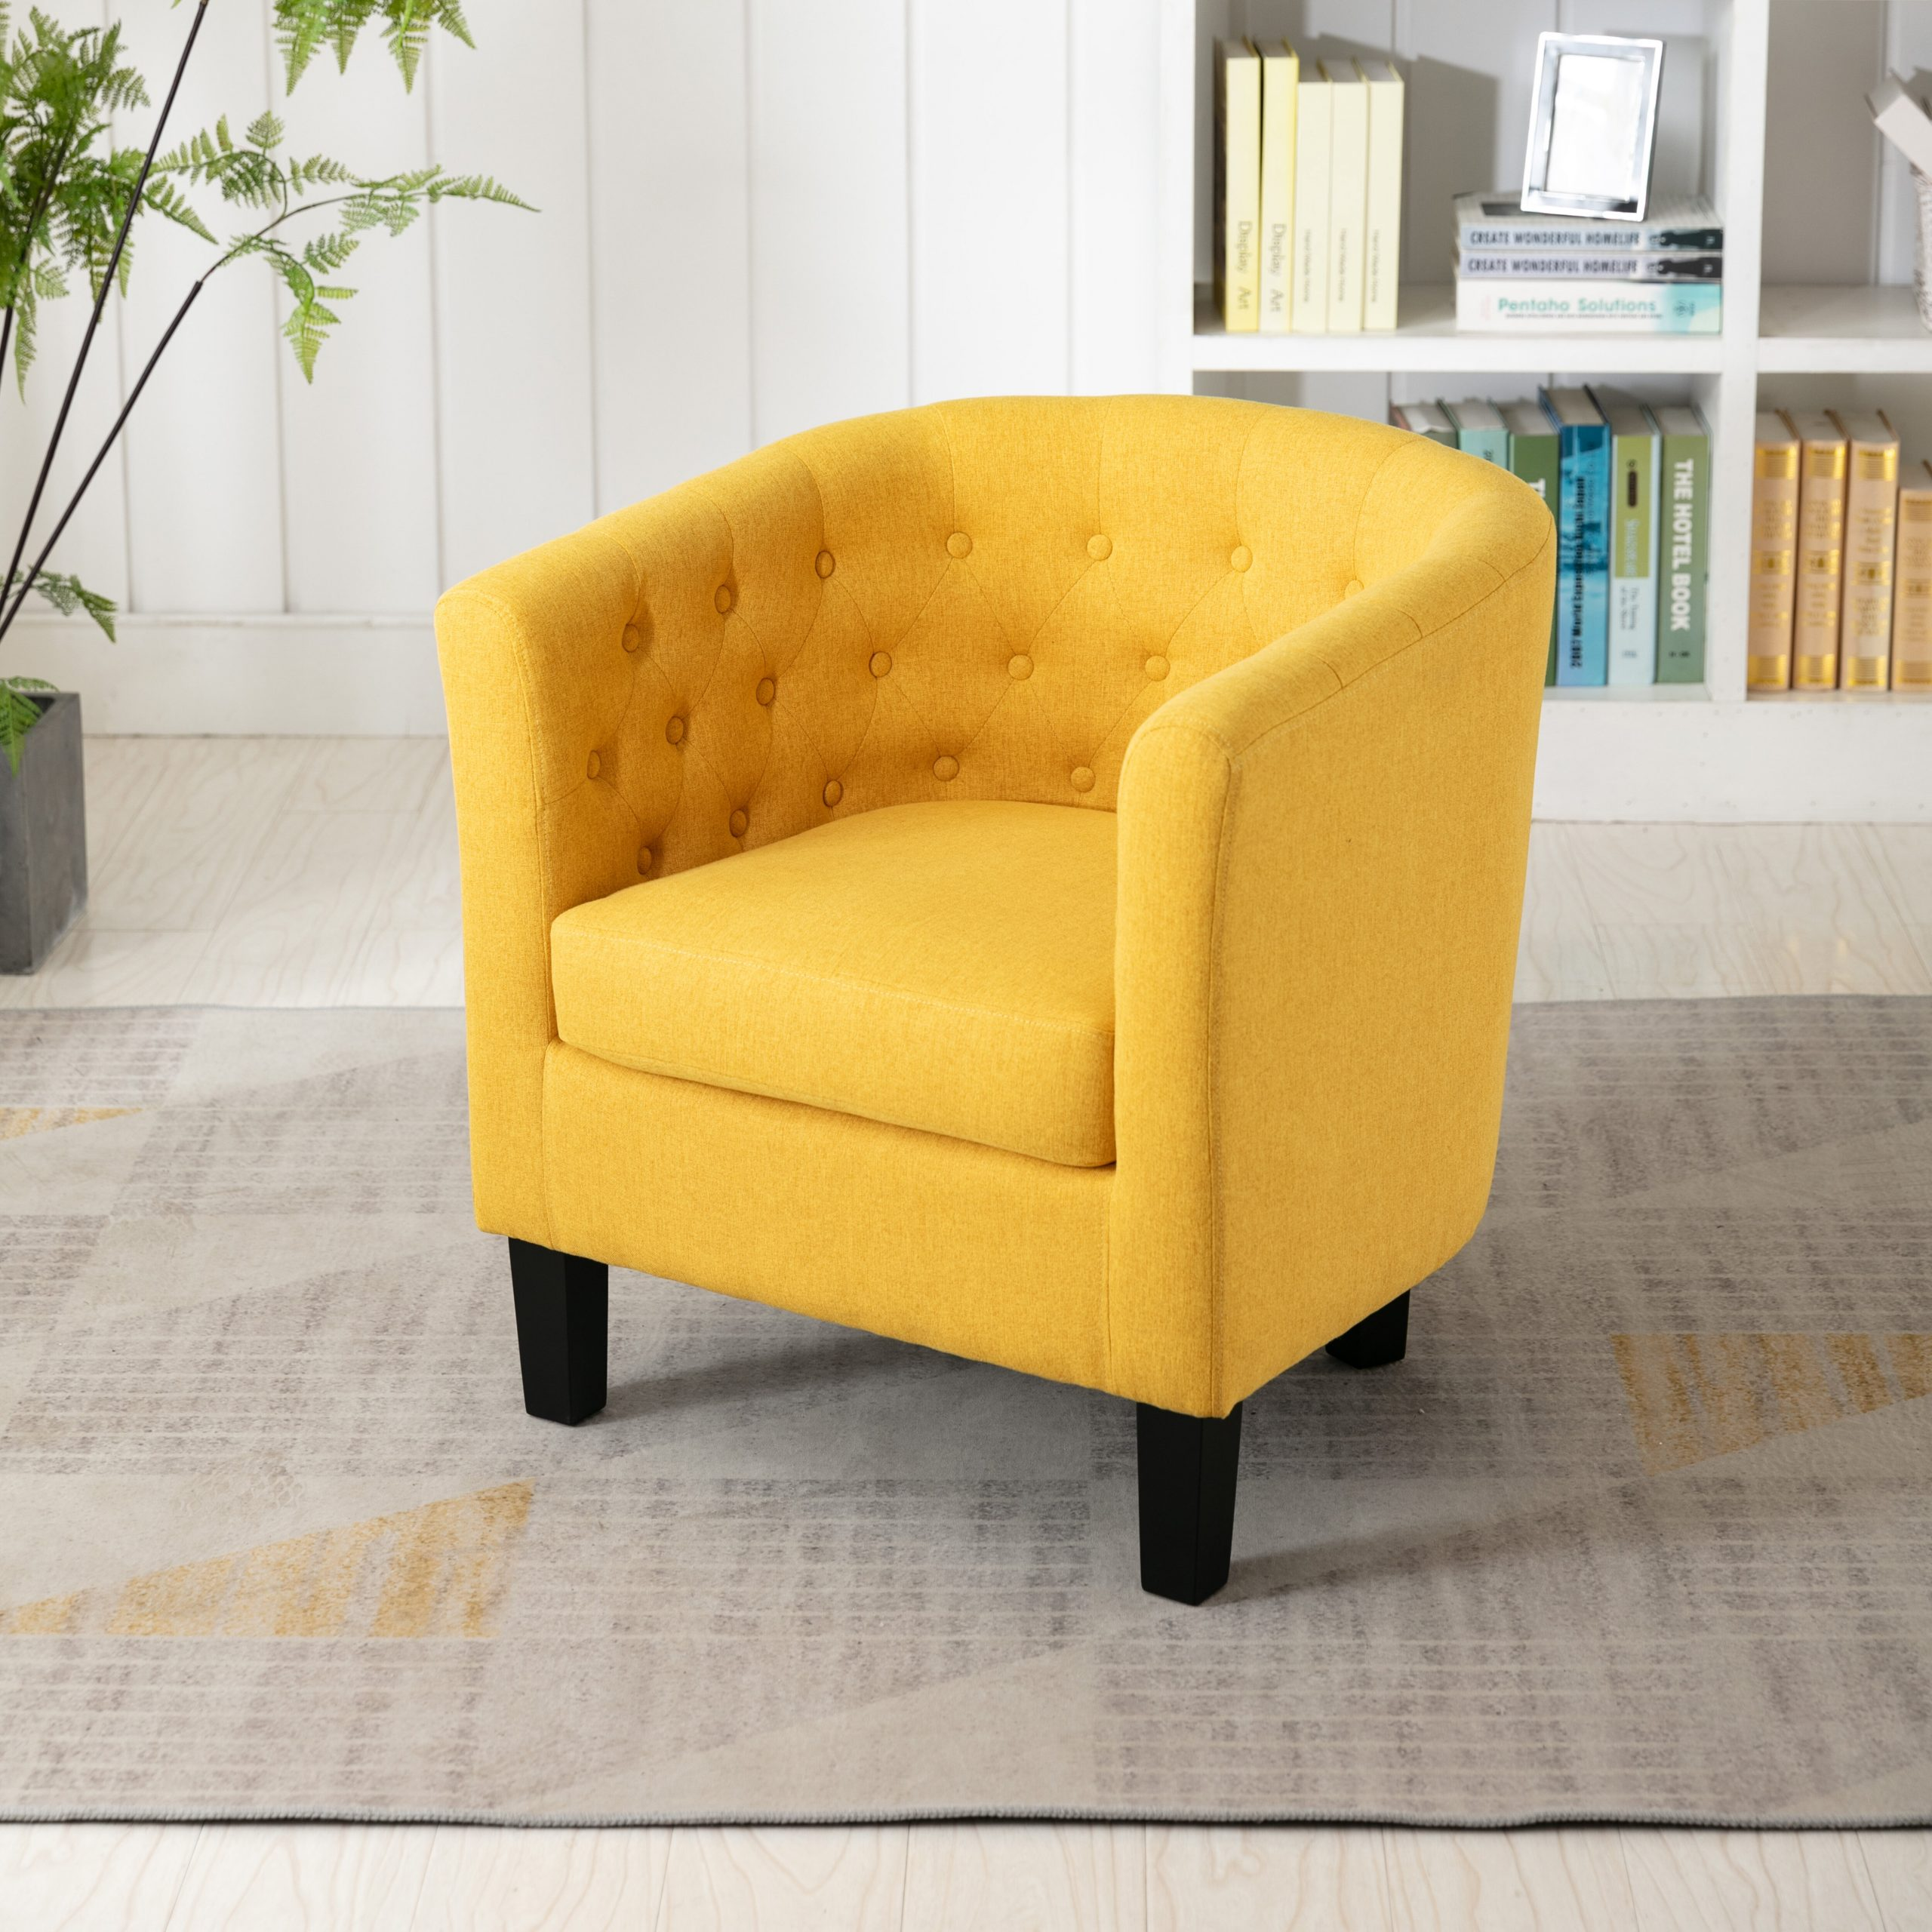 Barrel Accent Chairs On Sale | Wayfair Pertaining To Filton Barrel Chairs (View 15 of 15)